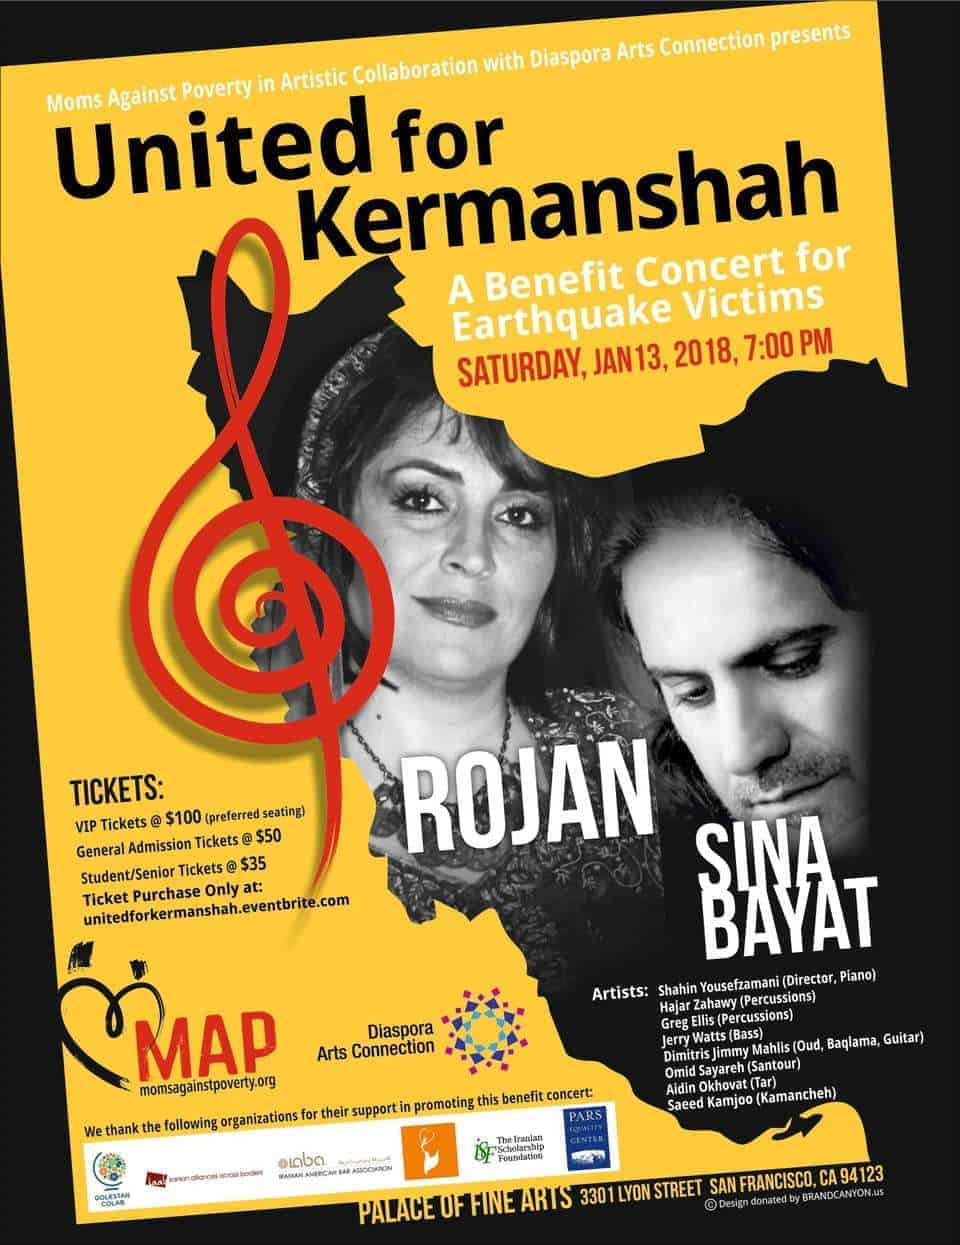 <b>United for Kermanshash</b> | A Benefit Concert for Earthquake Victims